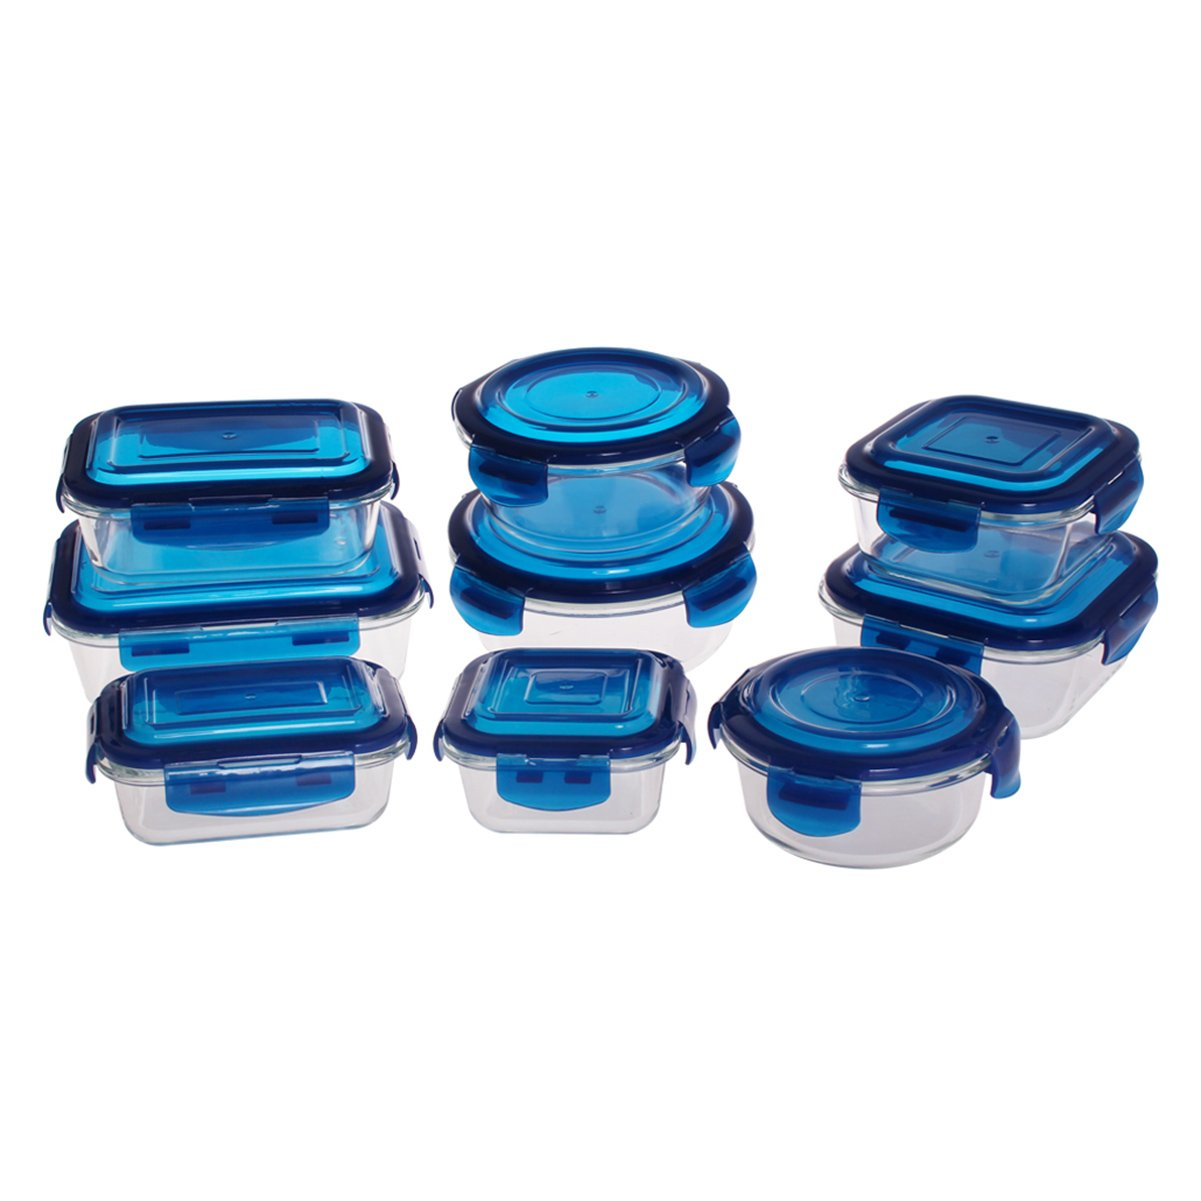 Glass Food Storage Container-18 Pieces Set(9 Containers+9 Lids) Glass Lunch Containers Airtight Food Storage Meal Prep Containers with Lids BPA-Free,for Home Kitchen or Restaurant